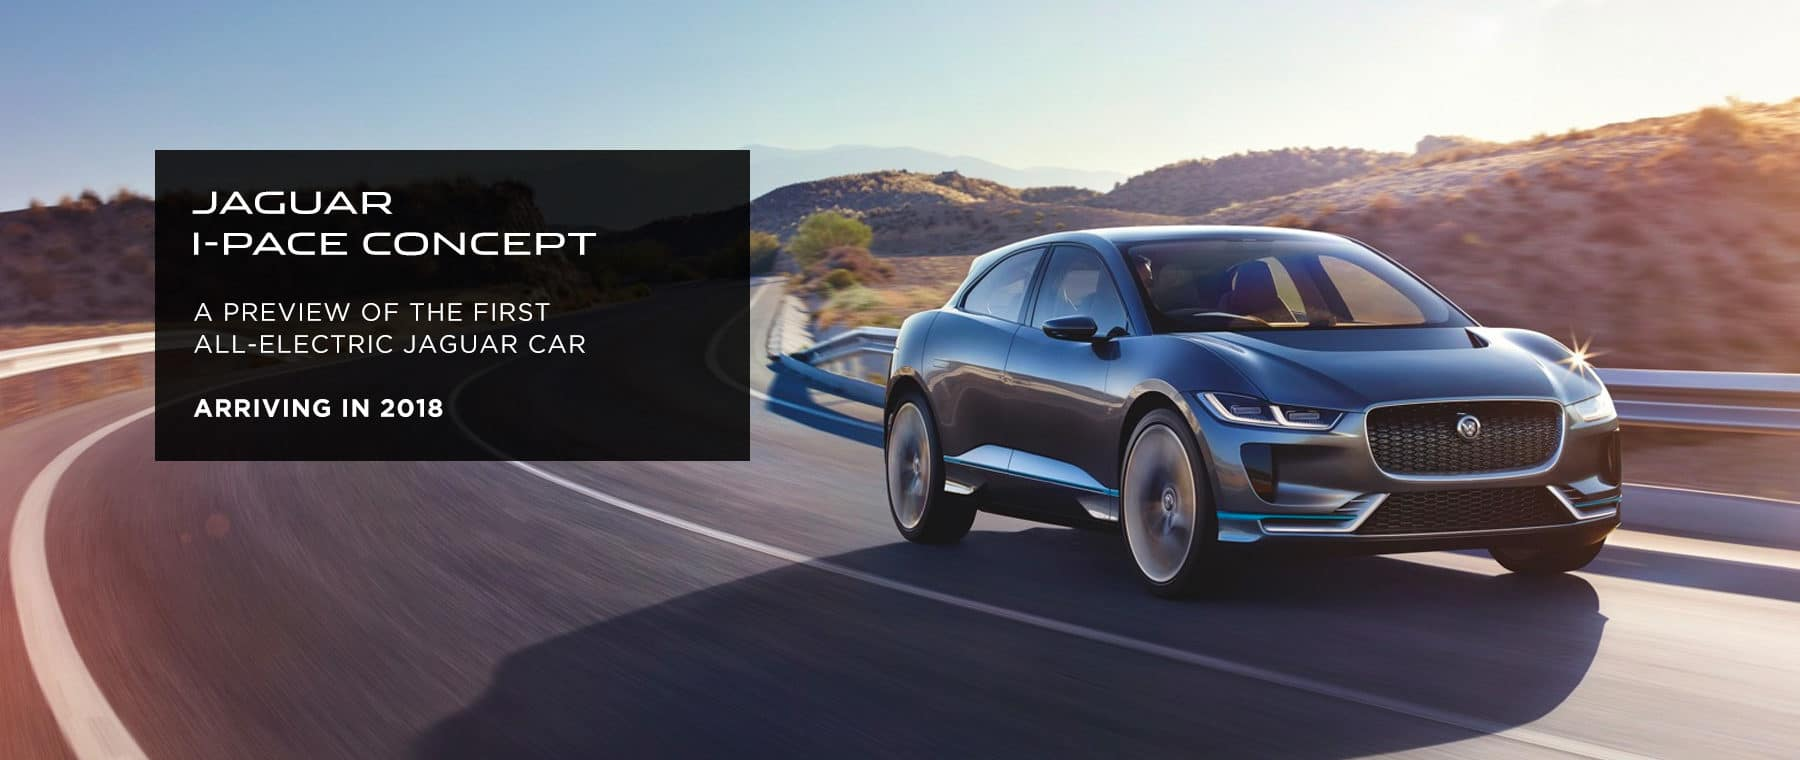 I-PACE concept Banner